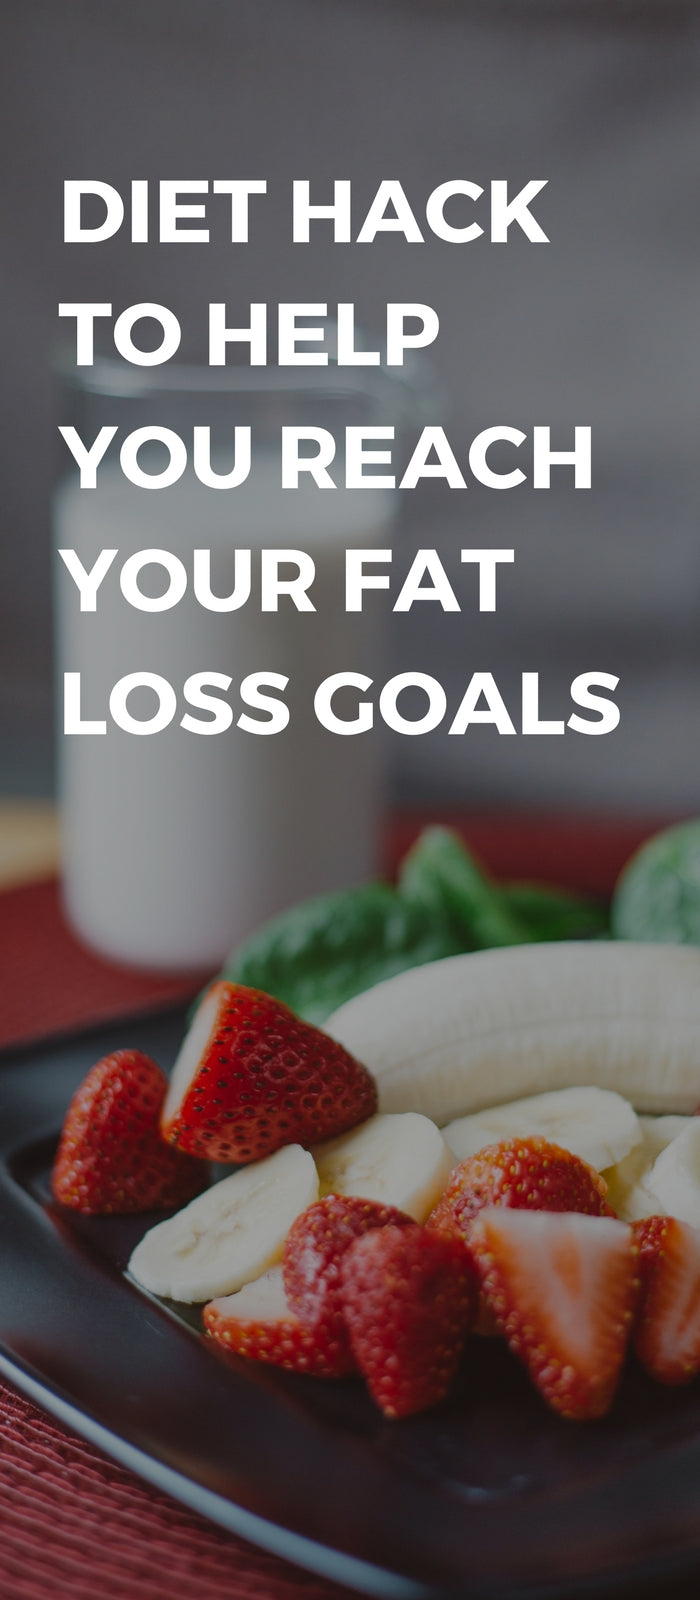 Diet Hack To Help You Reach Your Fat Loss Goals